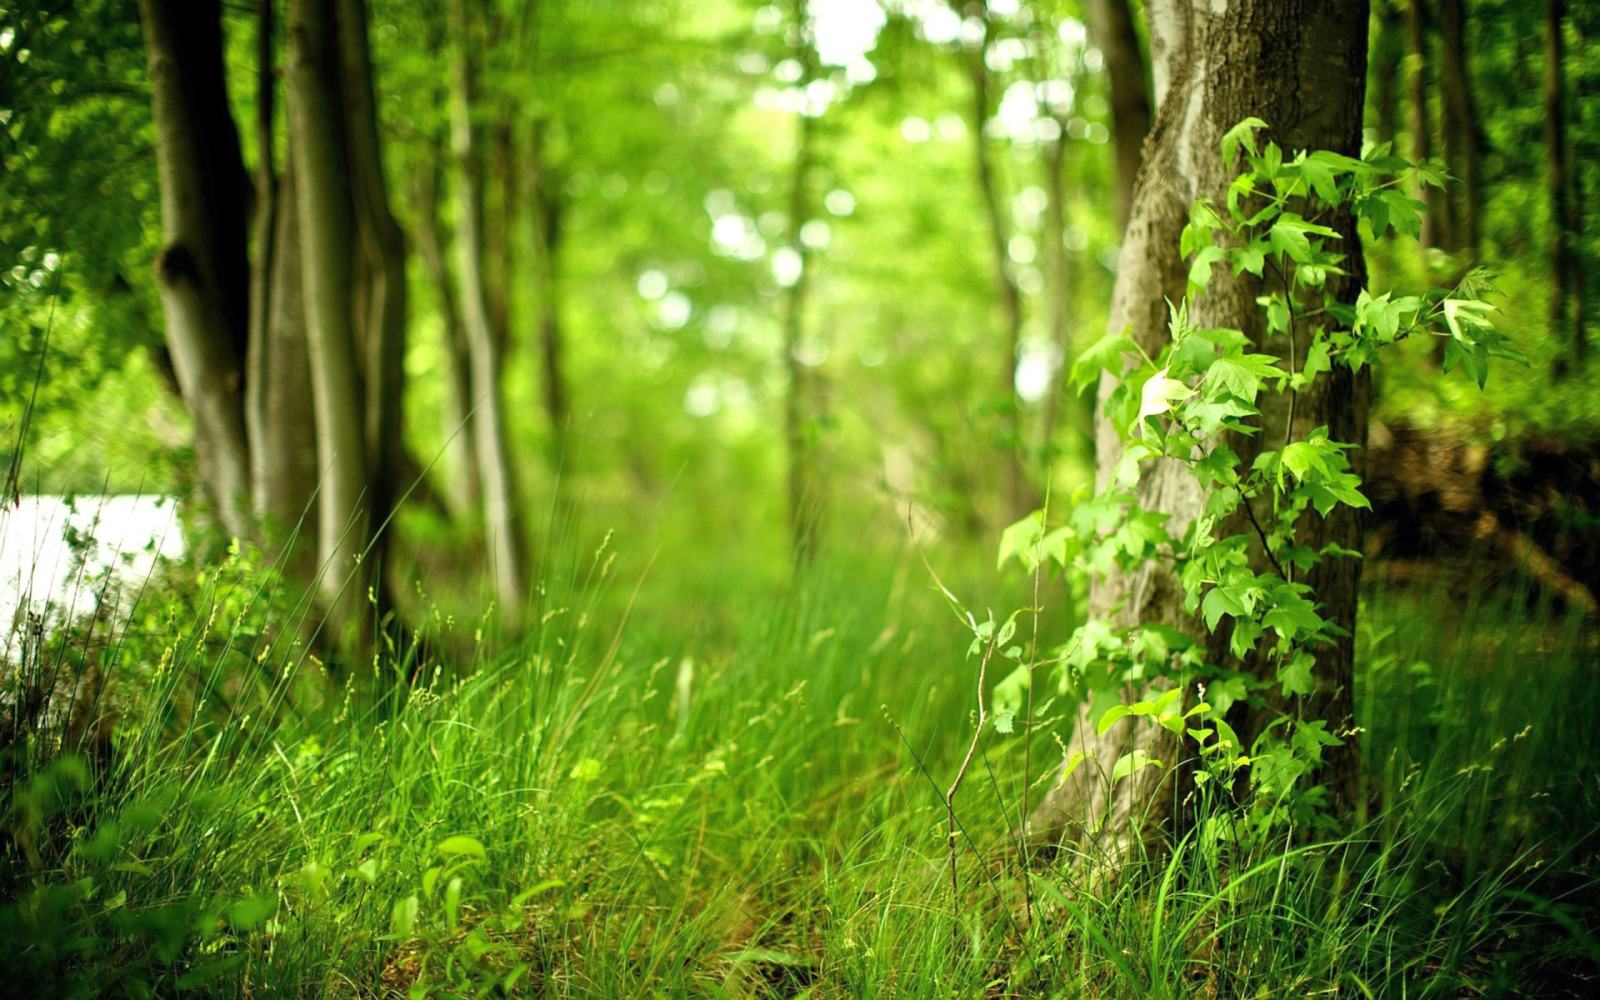 Green and beautiful wallpapers of Green Forest in 1024800 to 2560 1600x1000